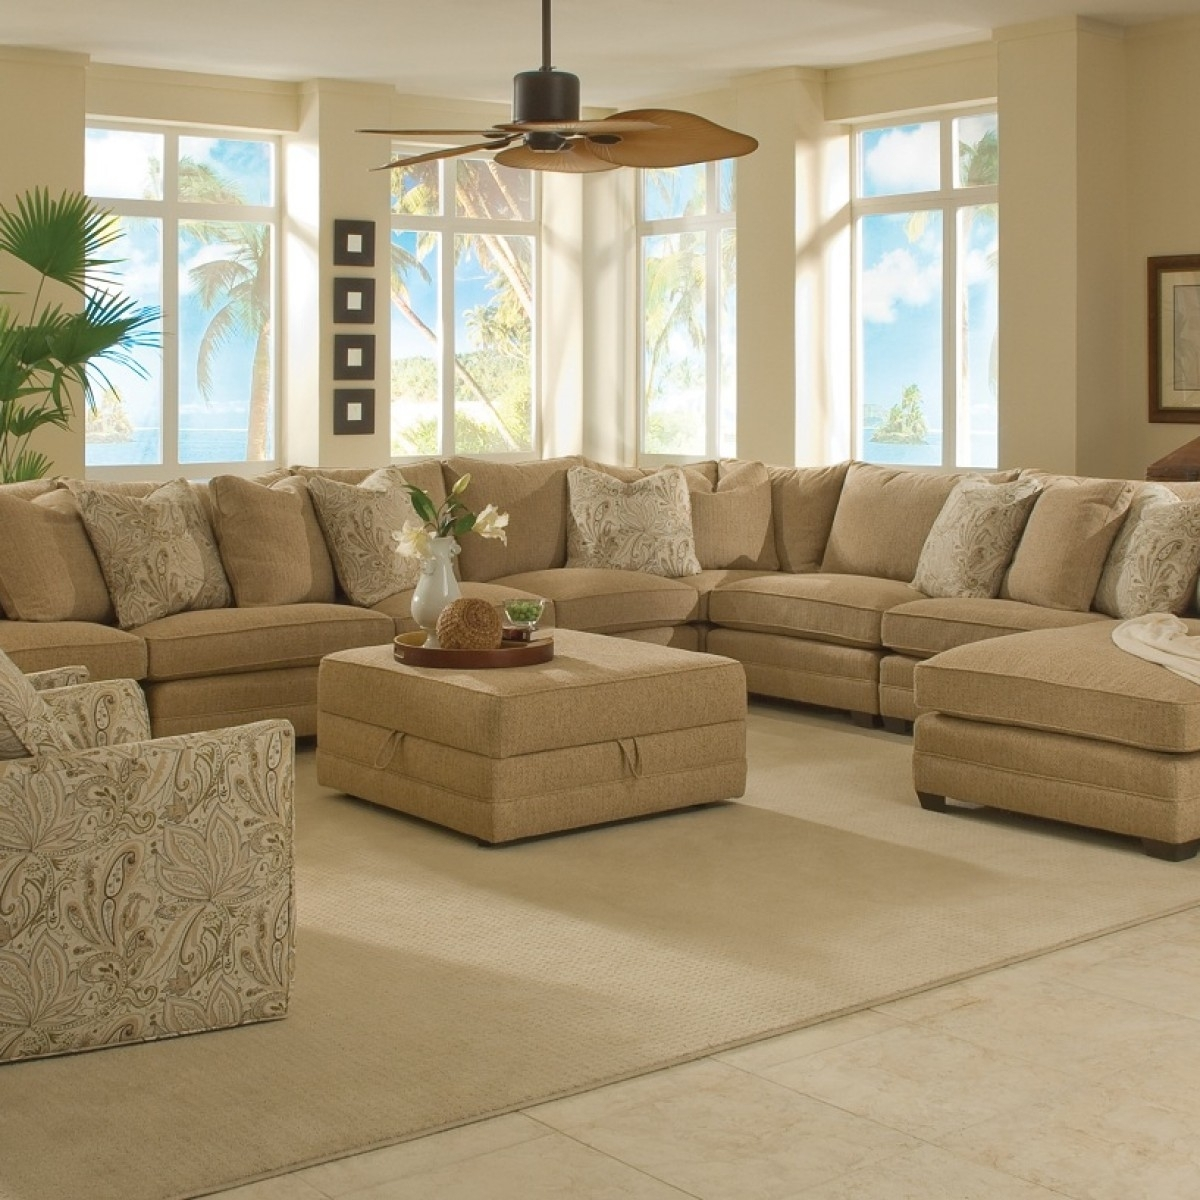 10 Best Deep Seating Sectional Sofas